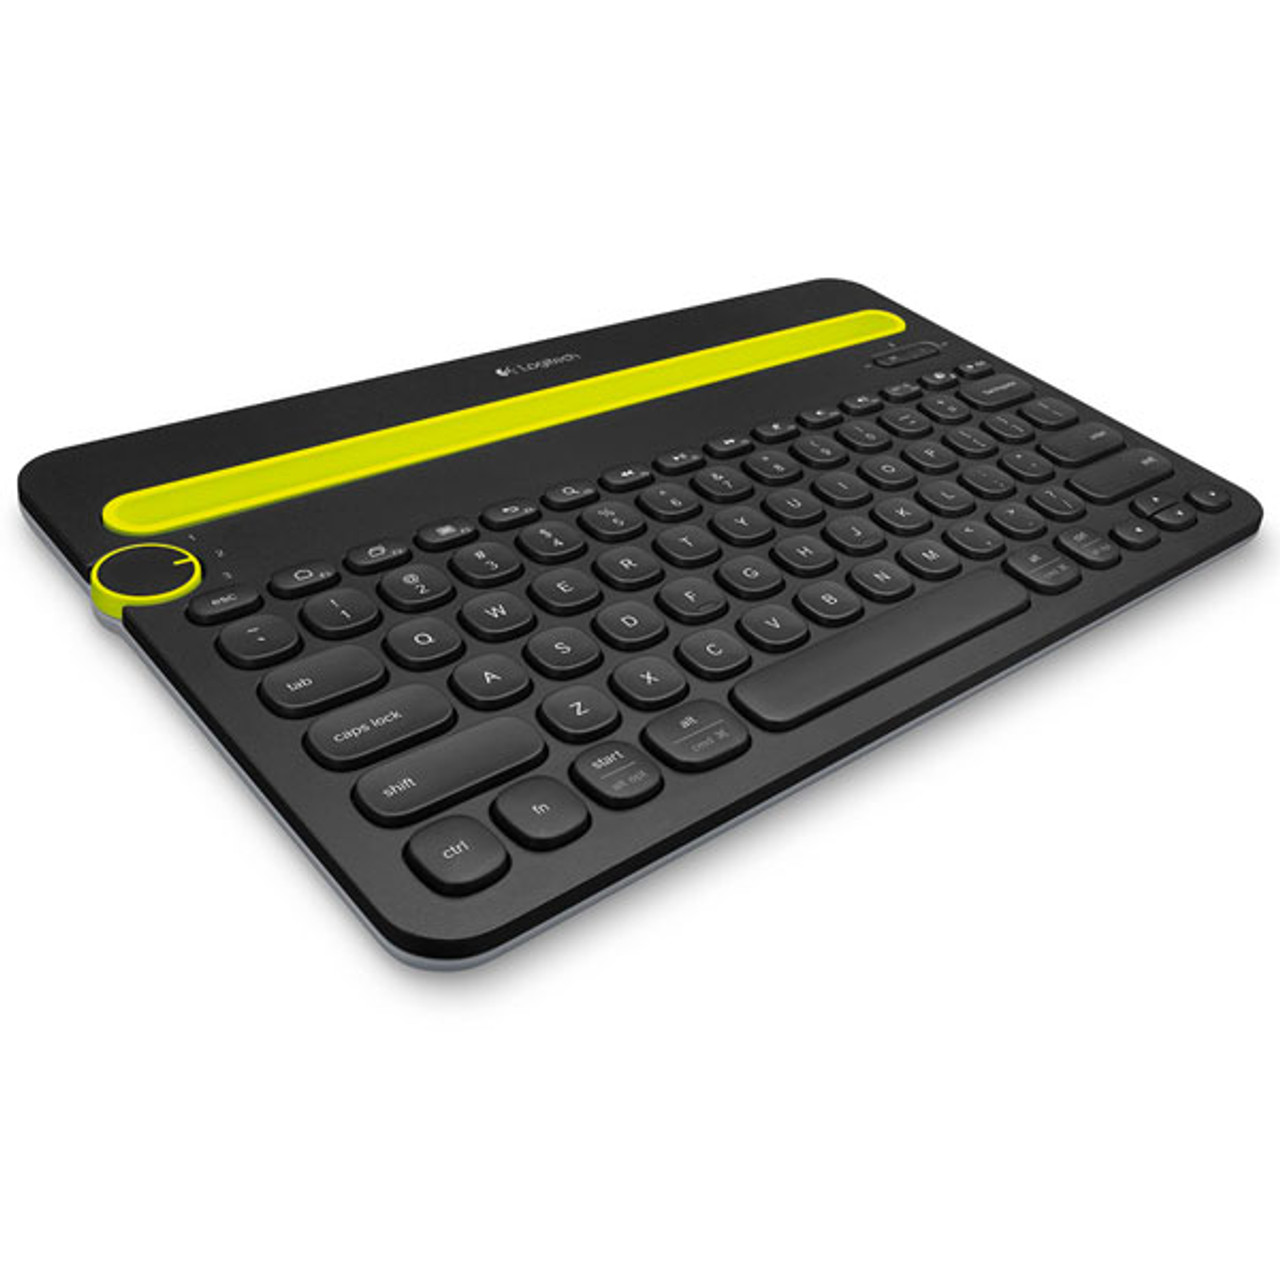 Product image for Logitech K480 Multi-Device Bluetooth Keyboard - Black   CX Computer Superstore